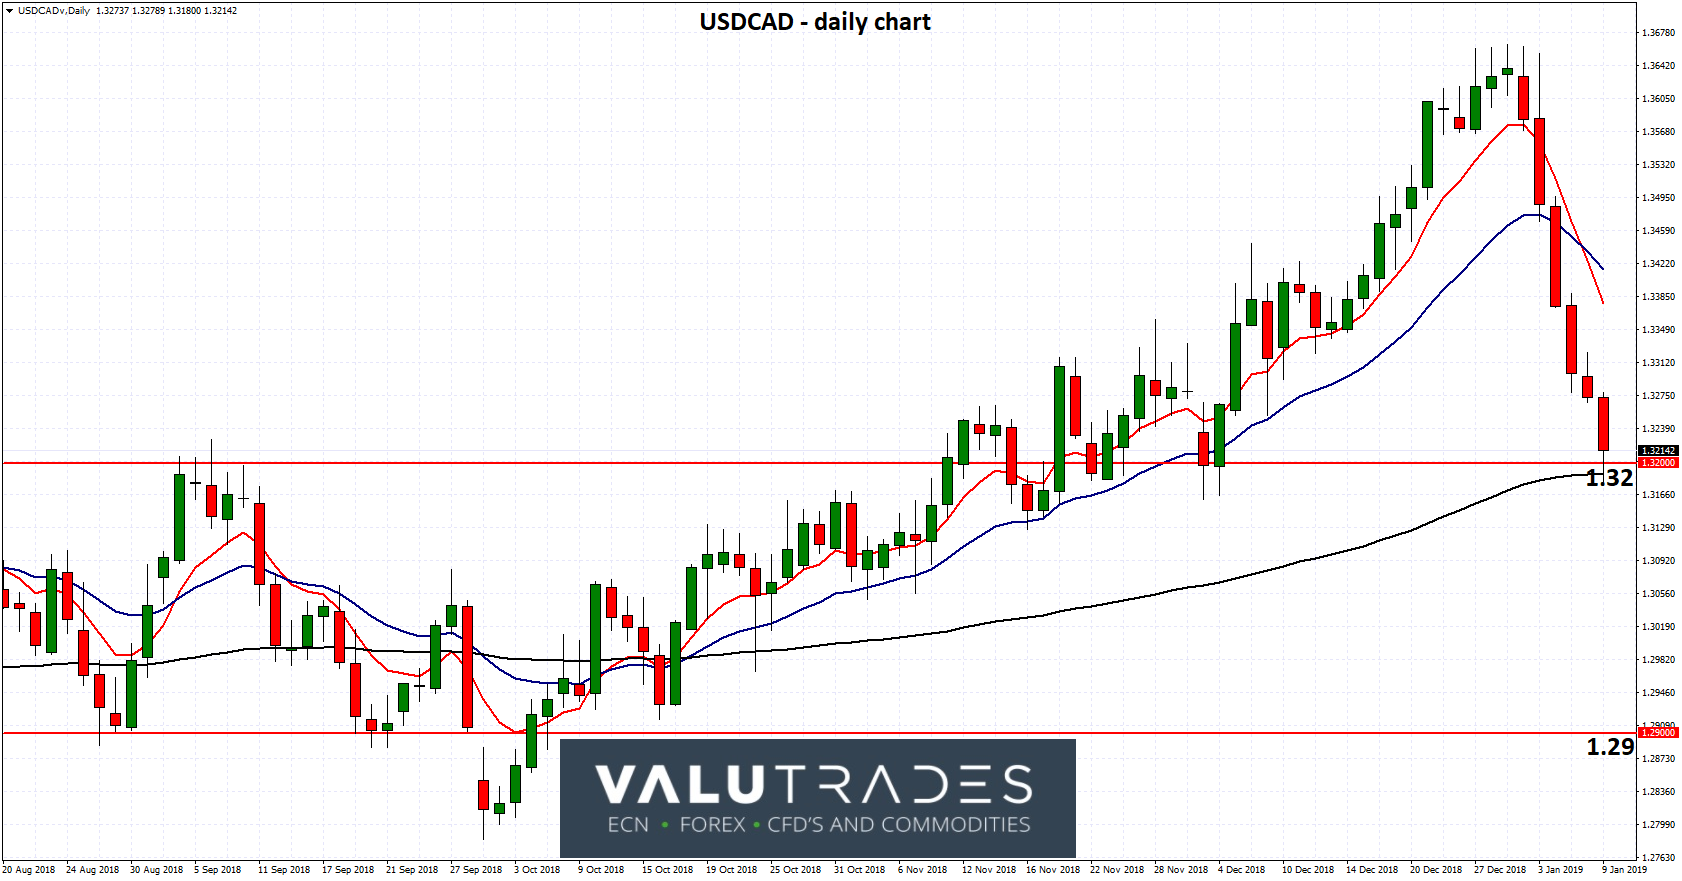 USDCAD - Drops Sharply from 18 Month High above 1.36 as BOC Sits